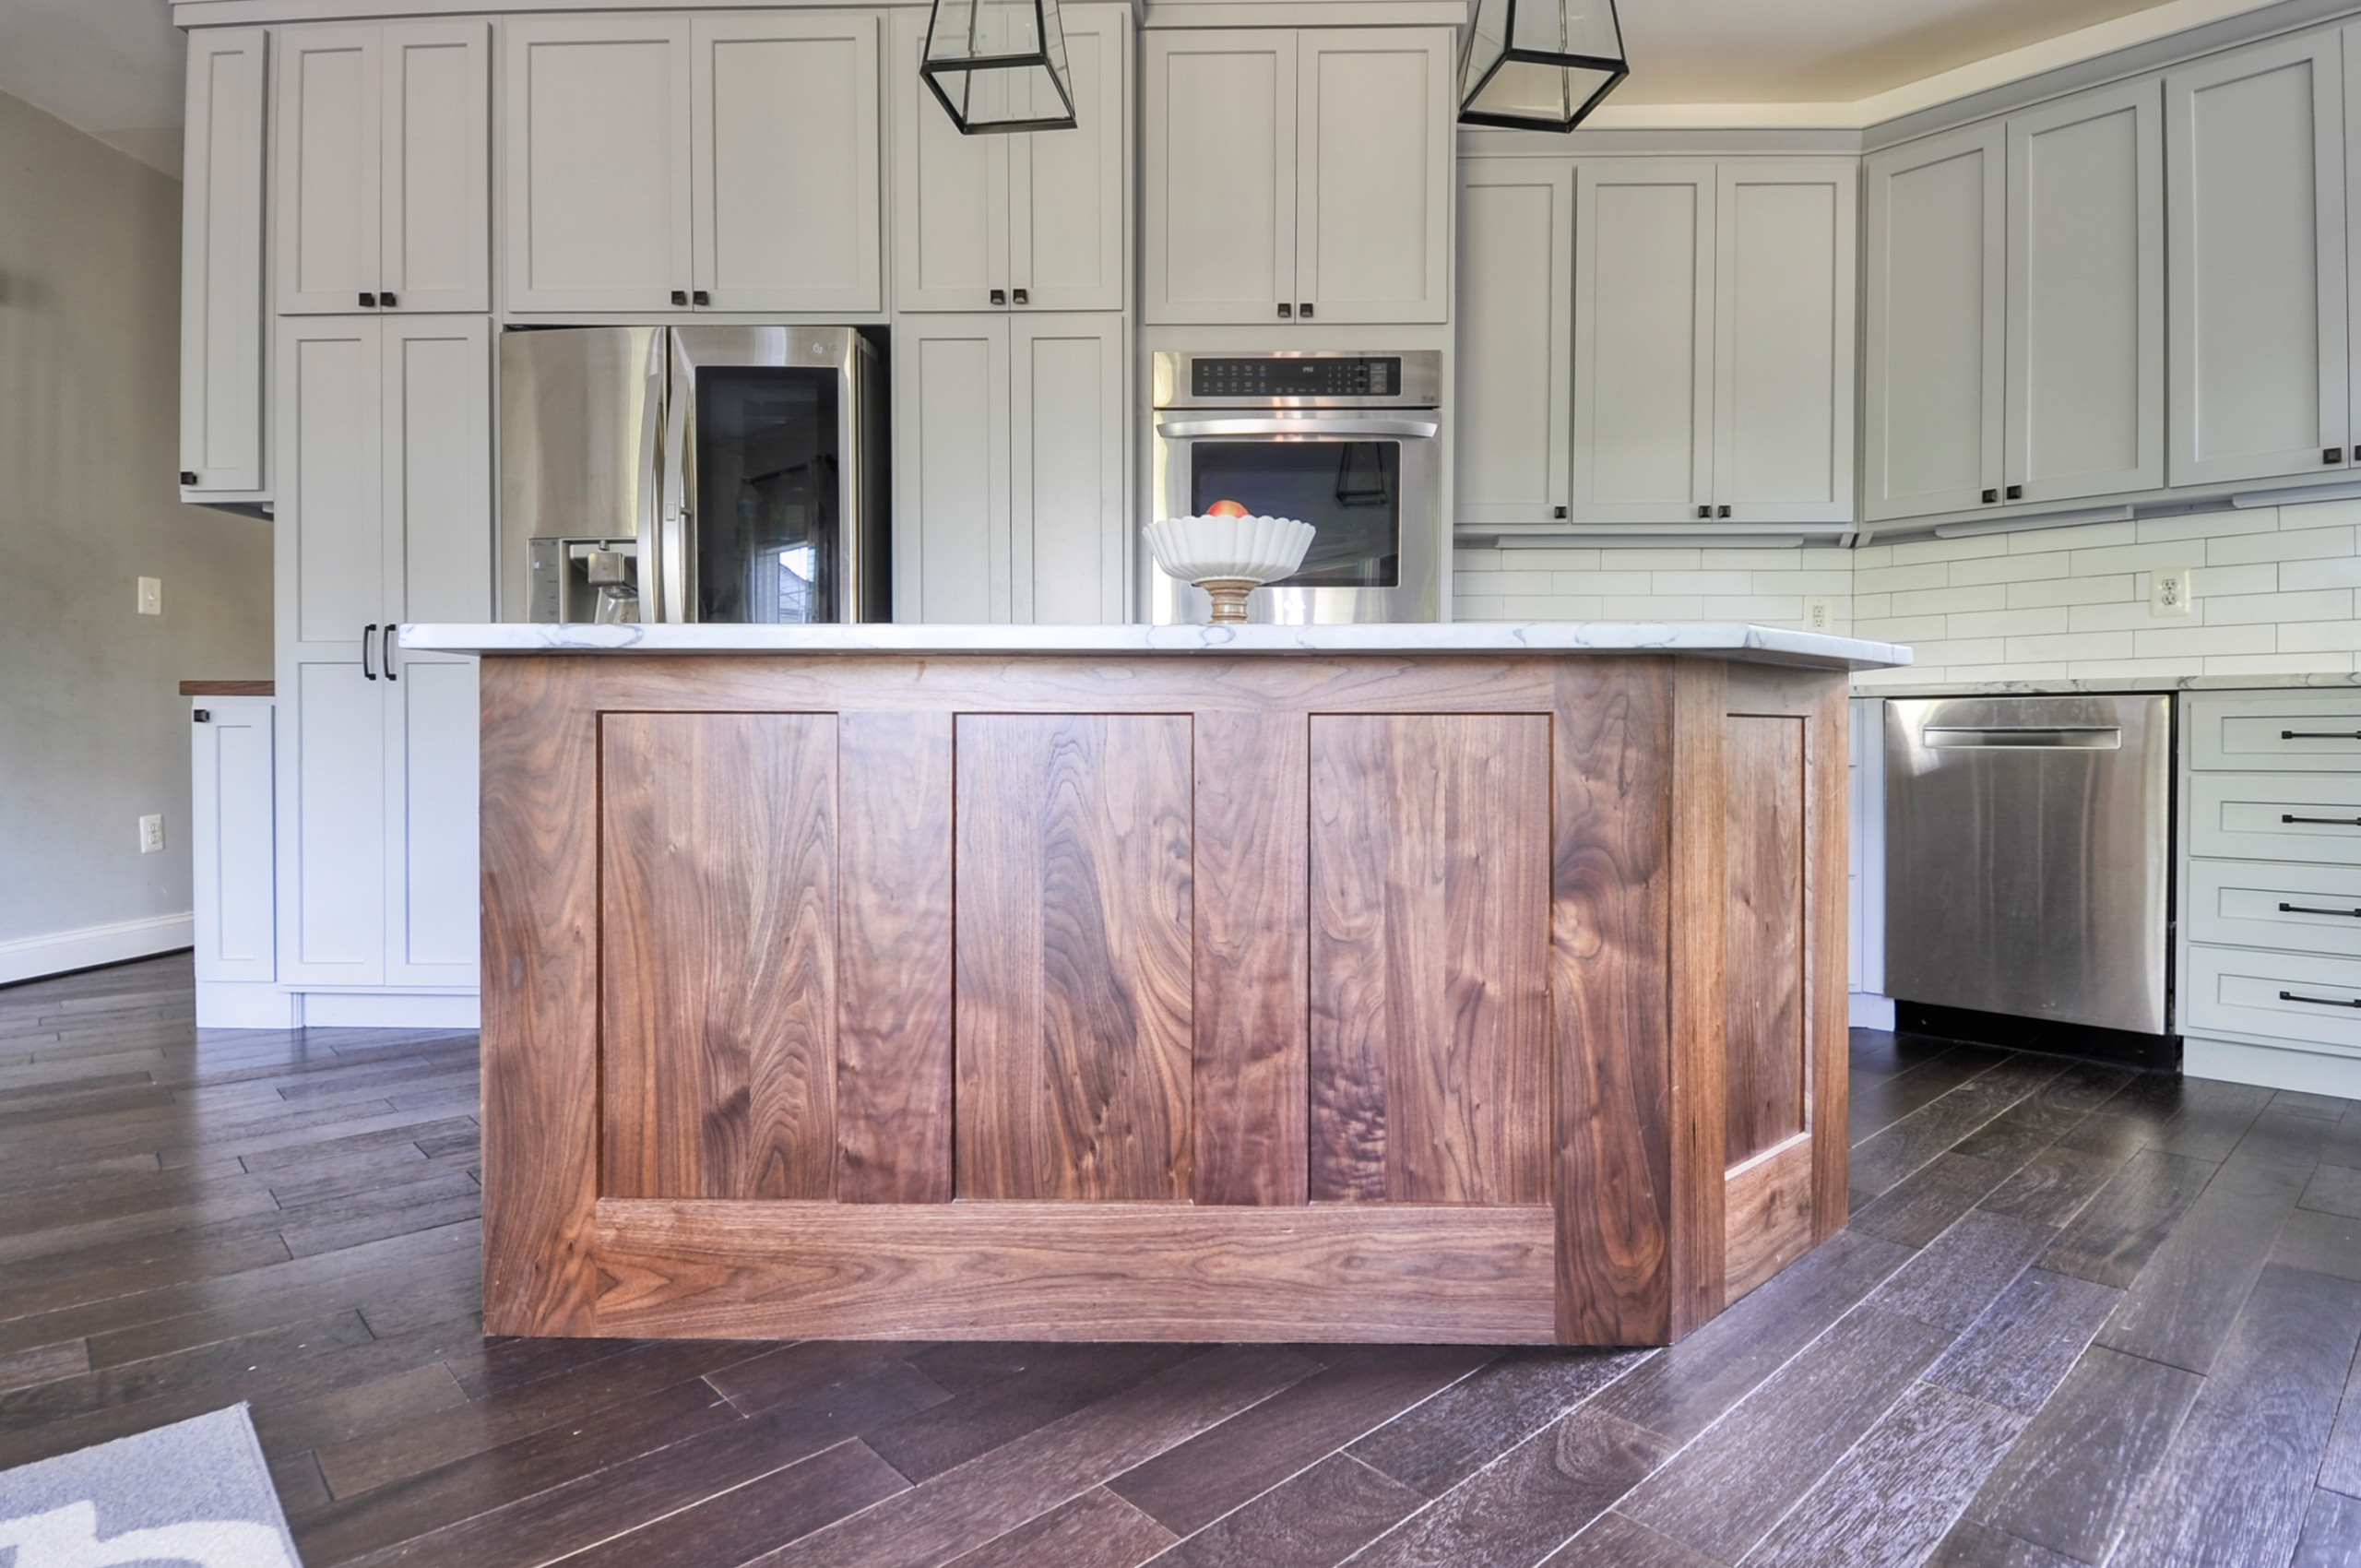 Storm (AF-700) Gray Painted Cabinets with Warm Natural Walnut Accents